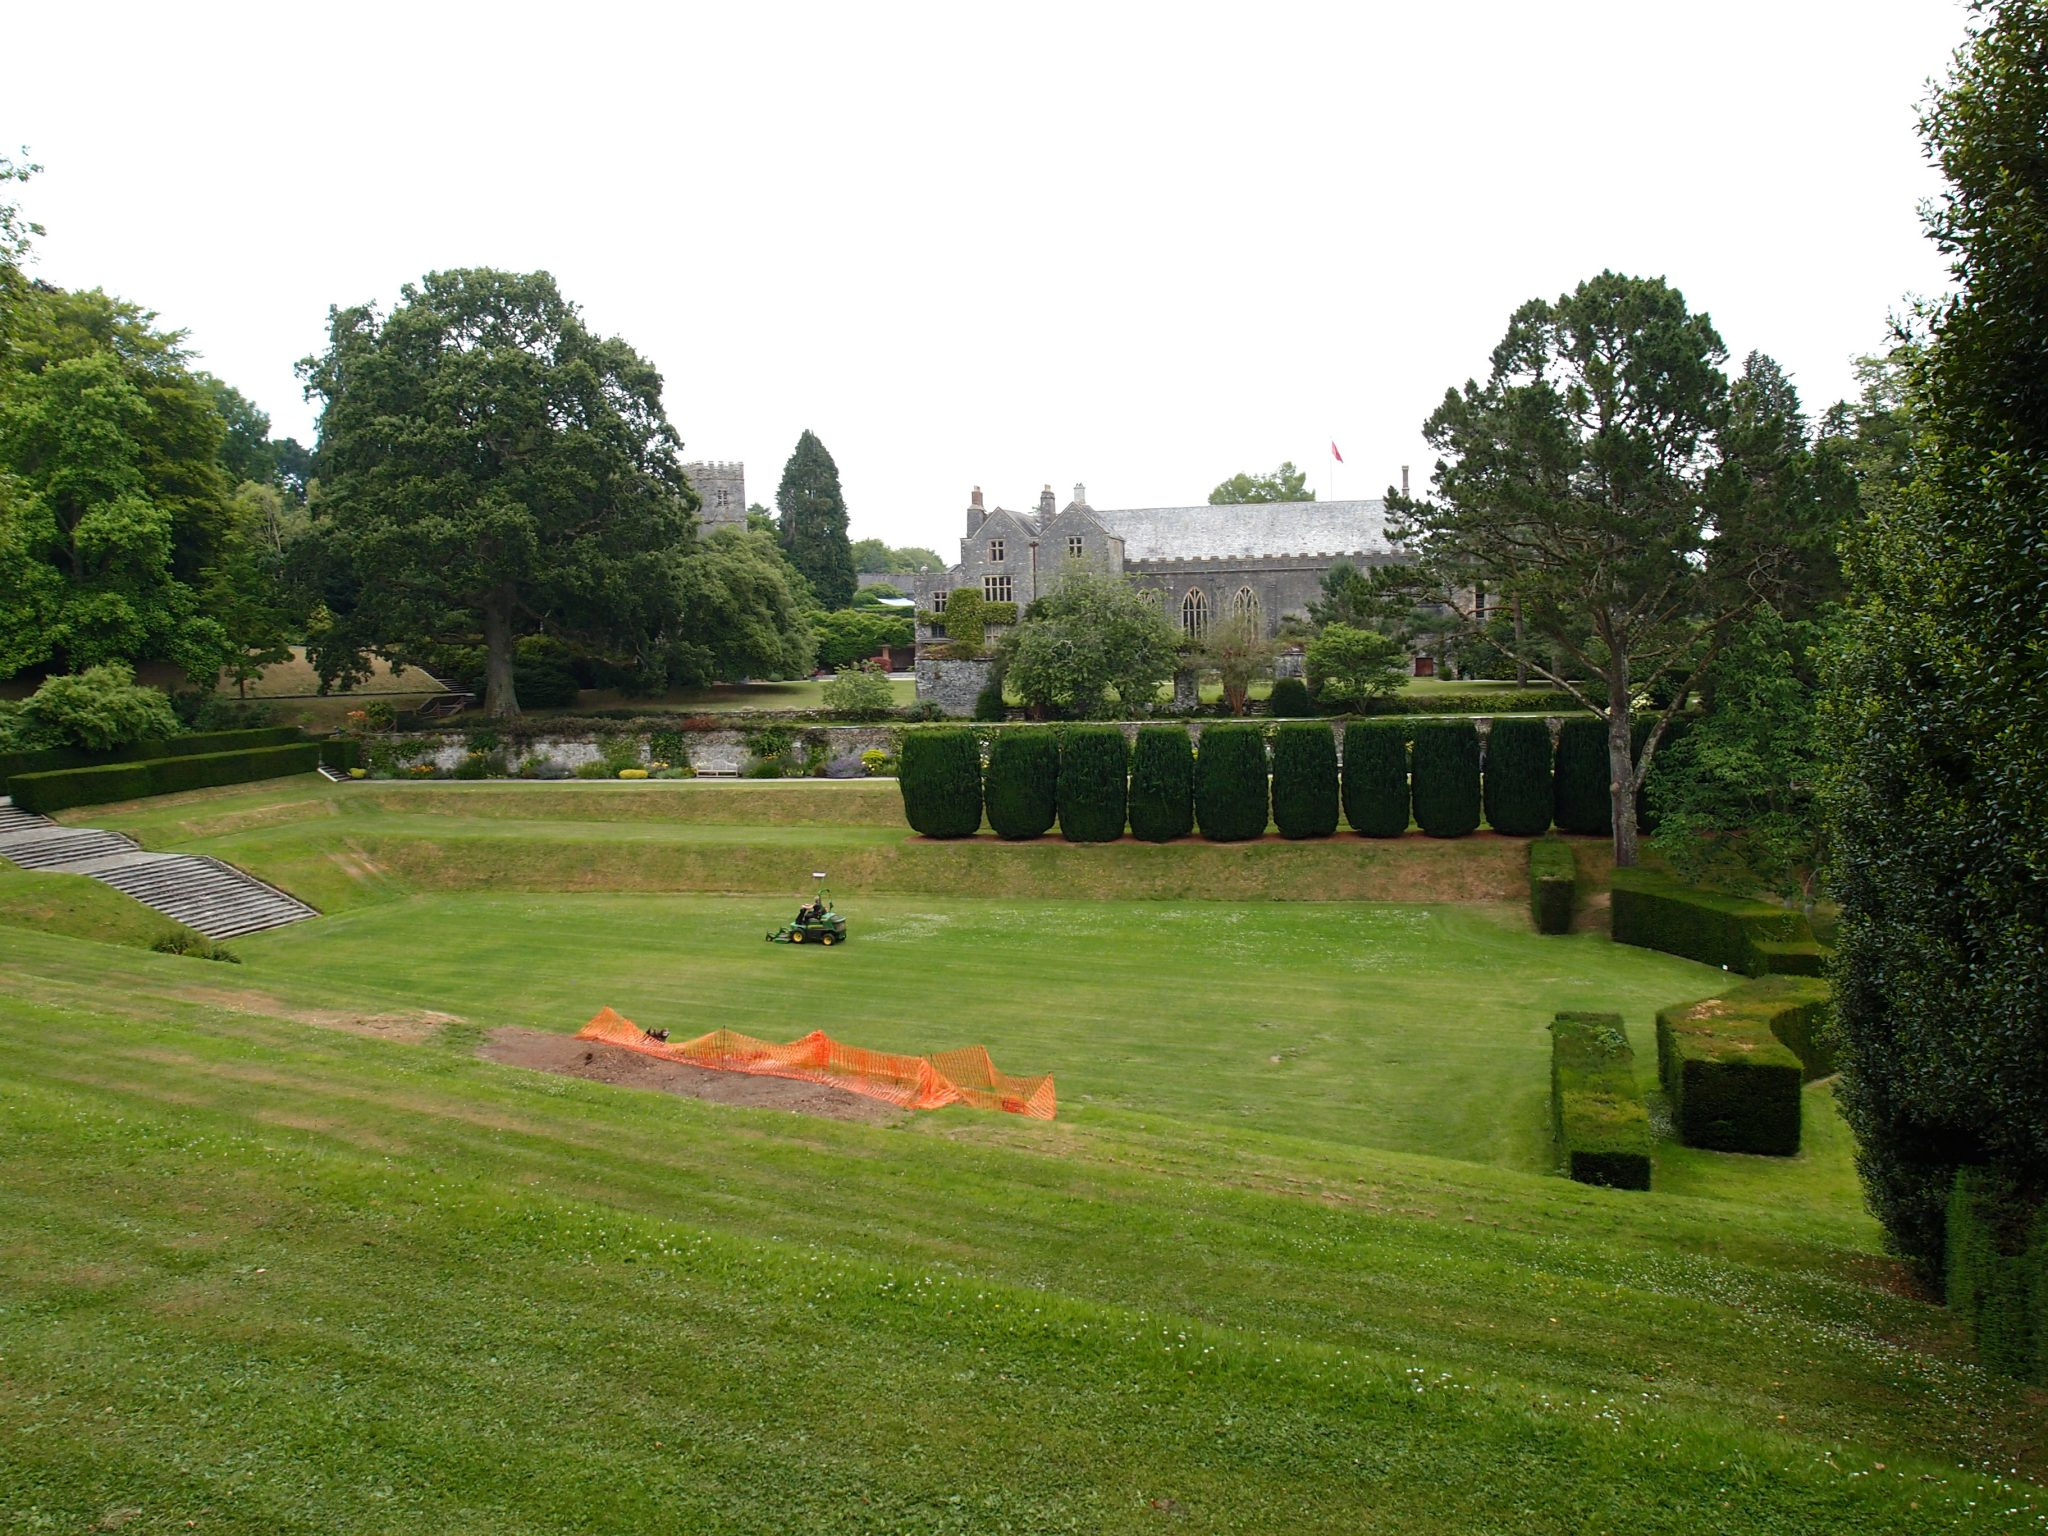 View from site of Moore sculpture, across the Tiltyard, toward the Twelve Apostles.